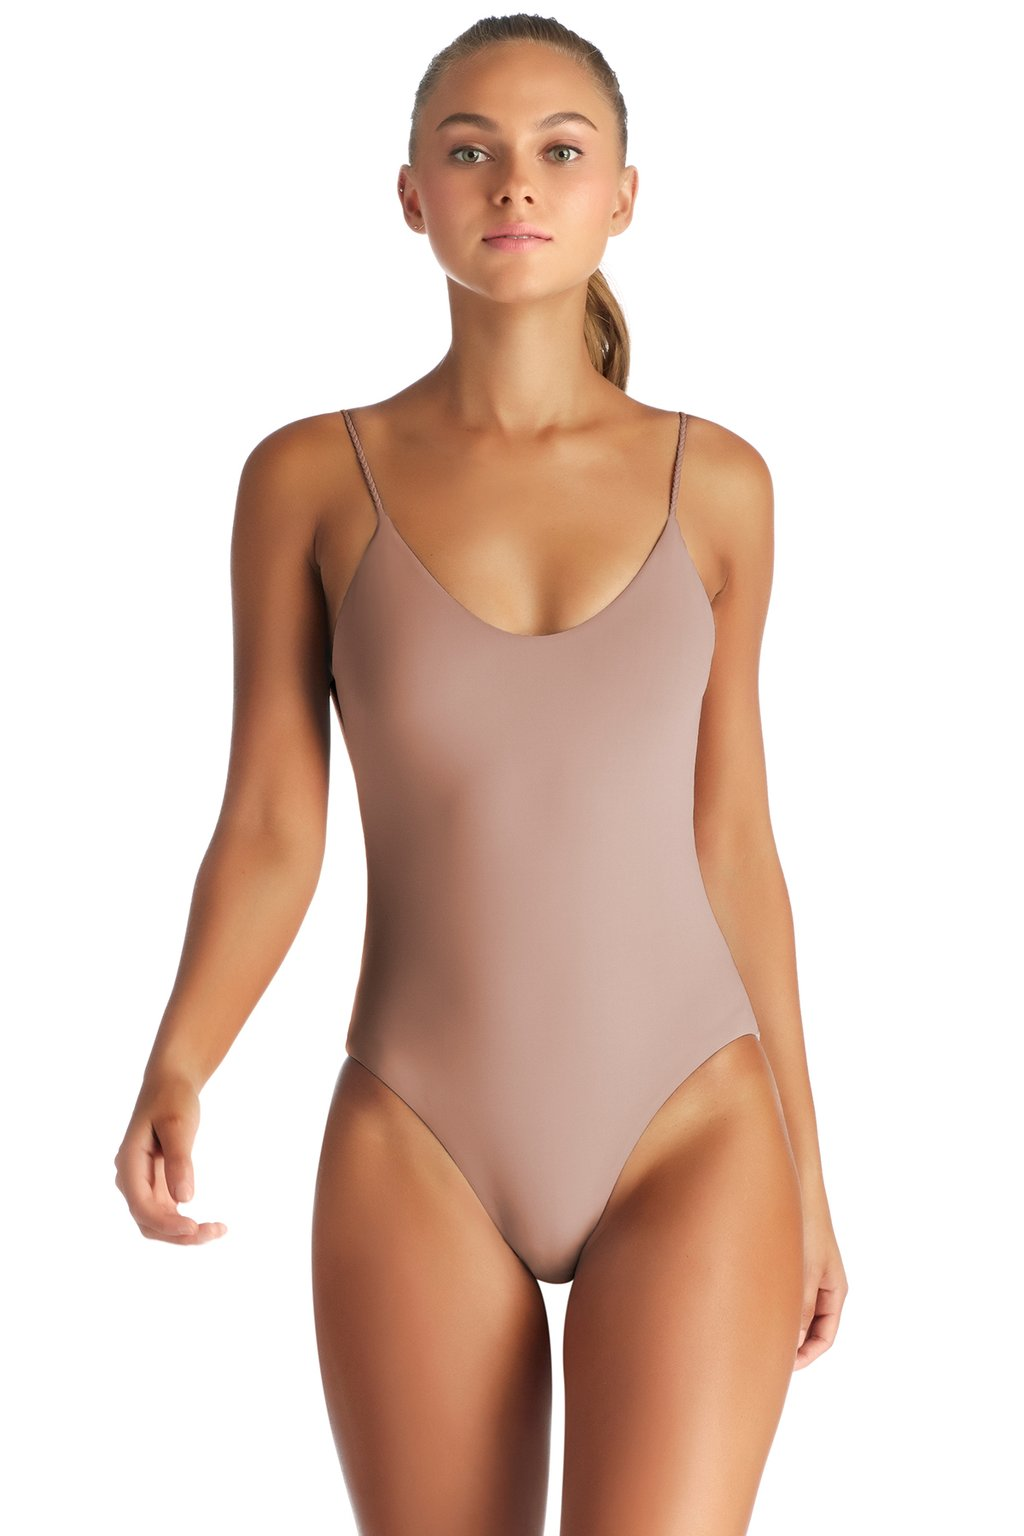 Lilli Bodysuit in U Taupia EcoLuxe by Vitamin A. Made in USA from recycled nylon fiber.